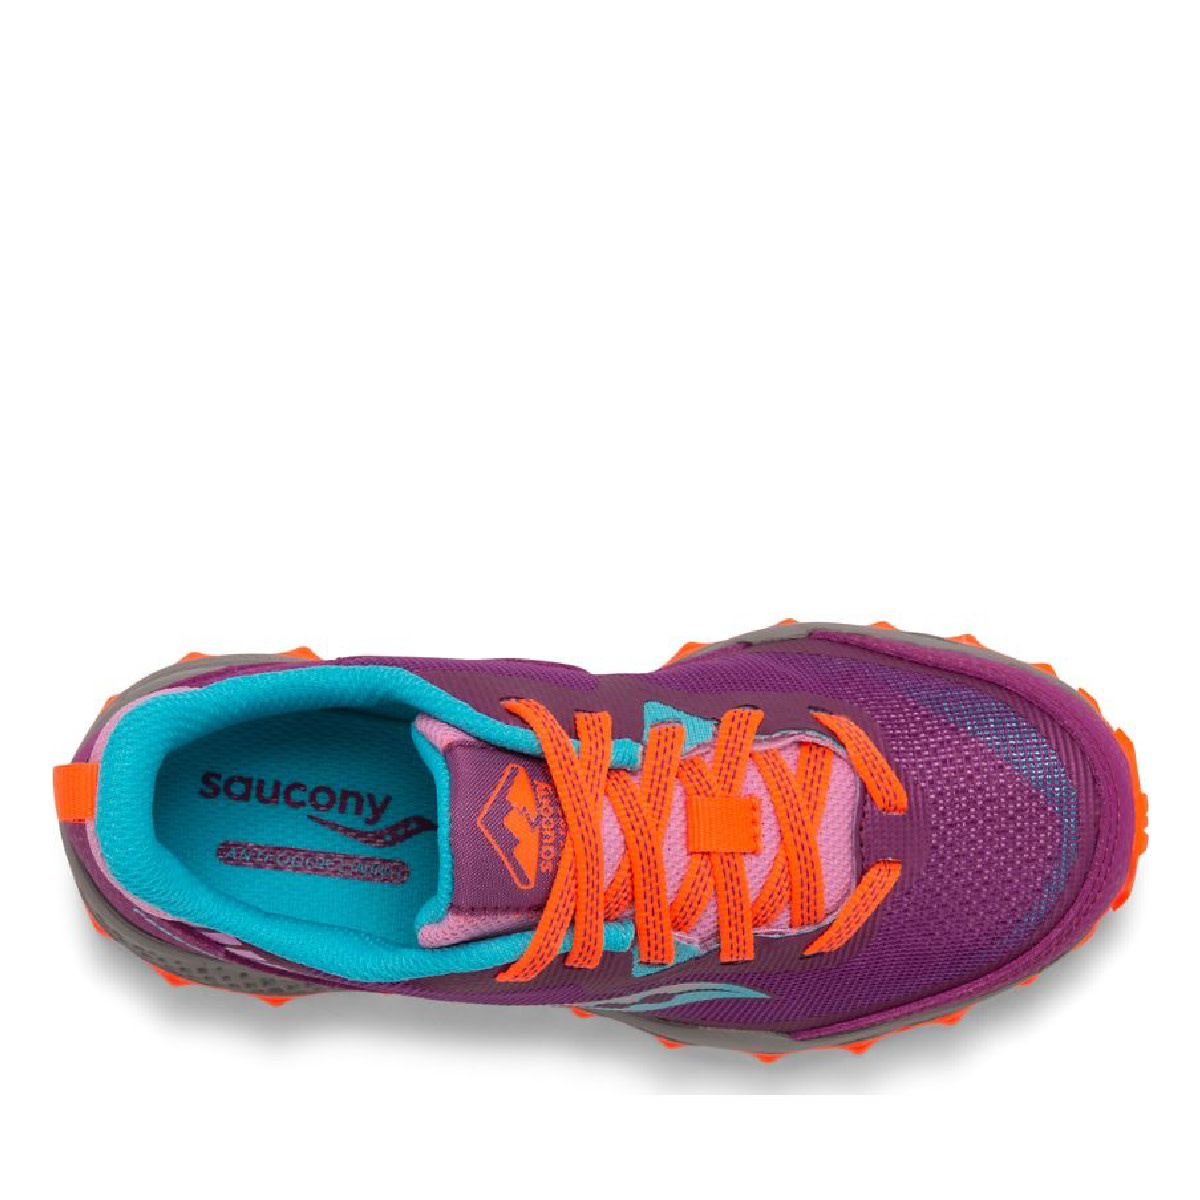 Saucony Saucony Youth Peregrine Trail Runner Magenta